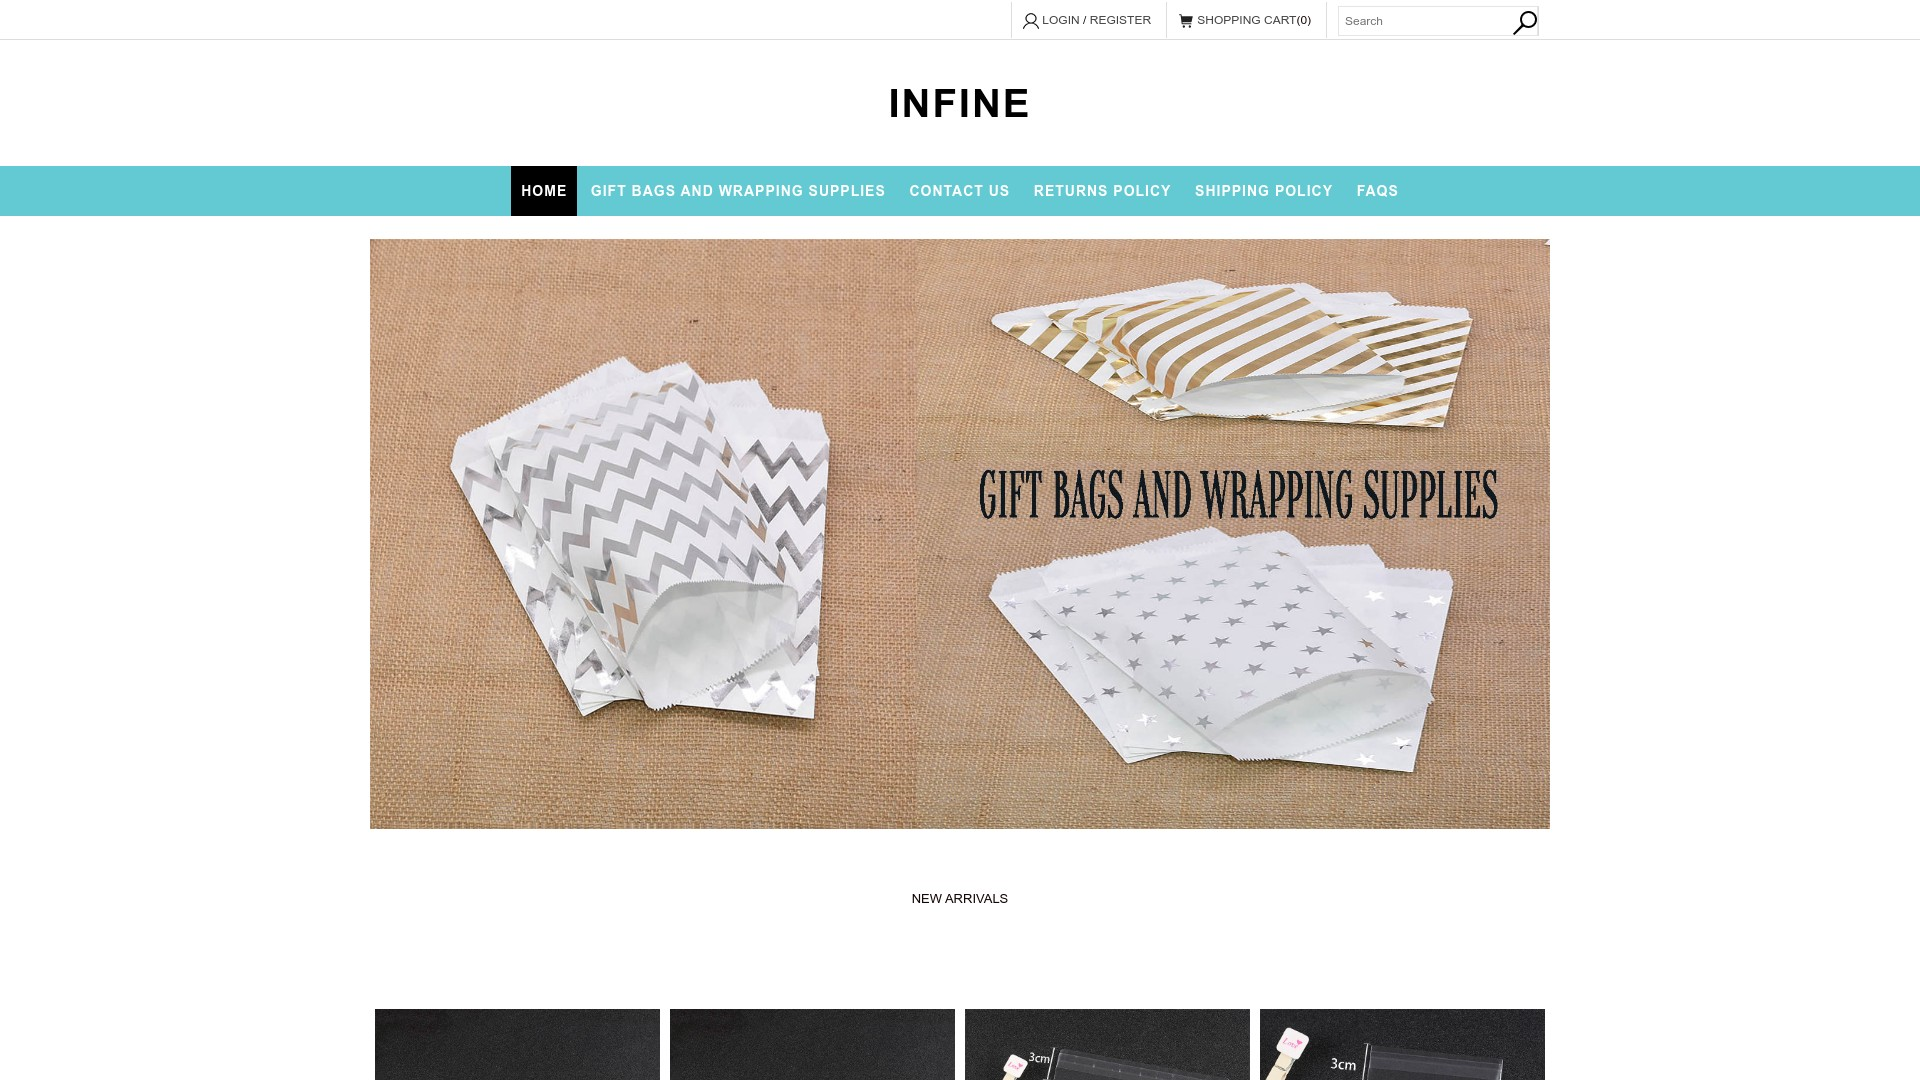 Is Infine World a Scam? Reviews of the Online Store